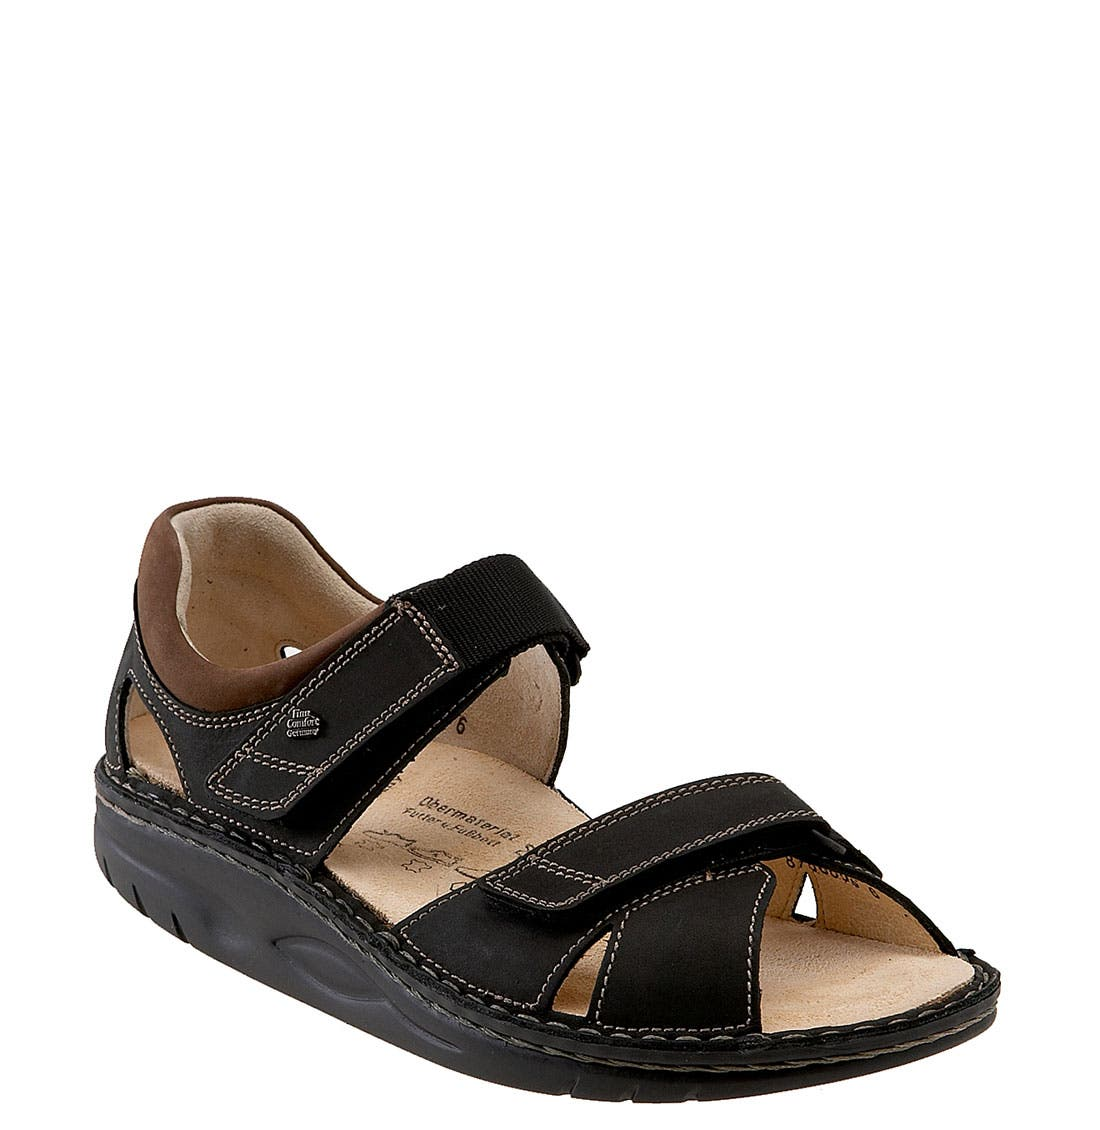 Main Image - FINNAMIC by Finn Comfort 'Samara' Walking Sandal